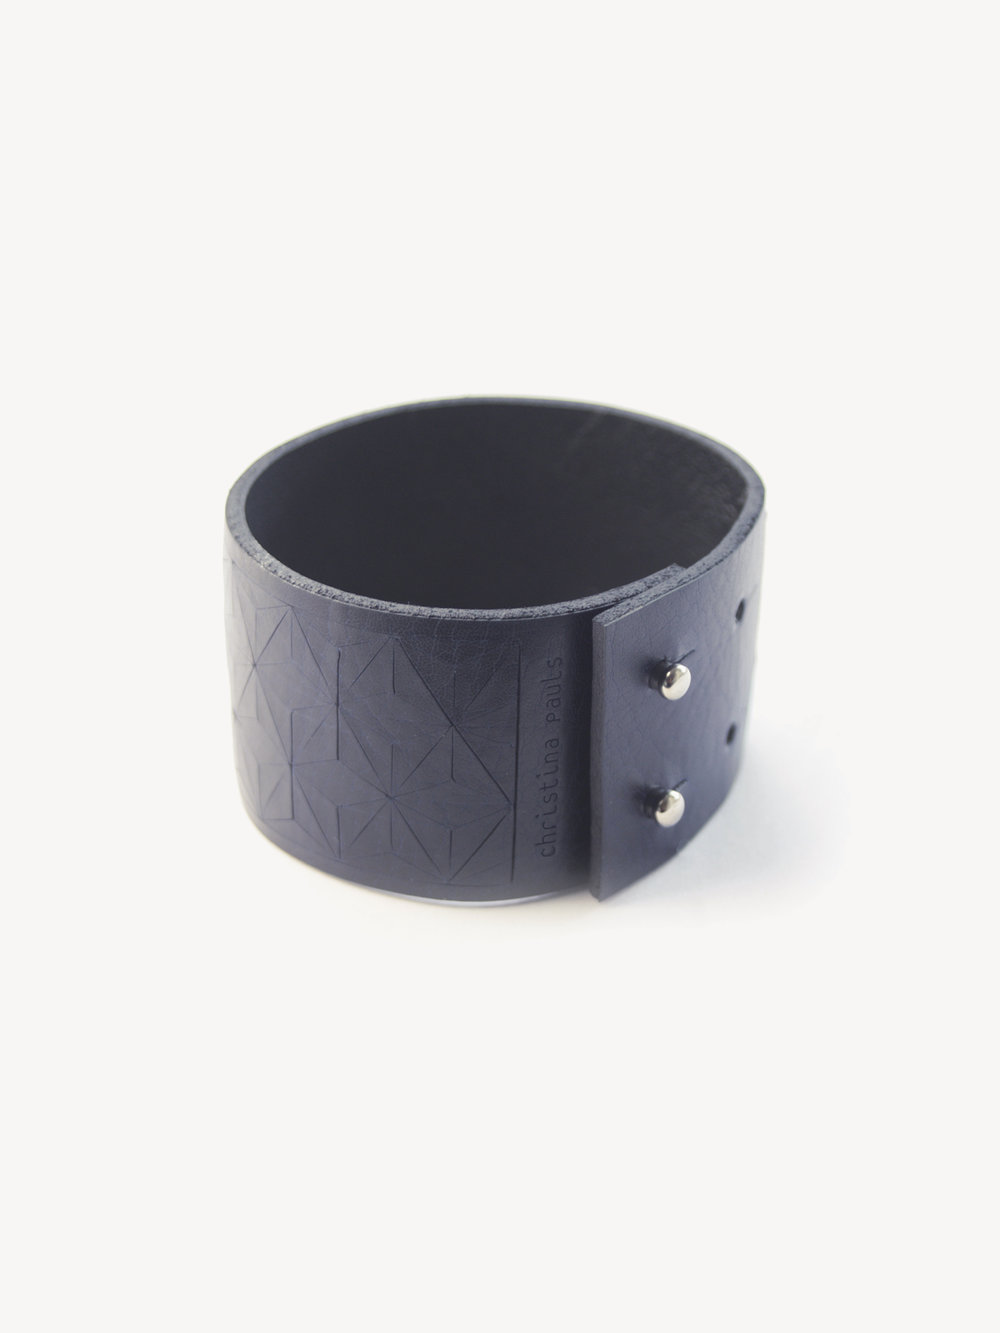 Leder-Armband, schmal in dunkelblau  Leather bracelet, small in navy